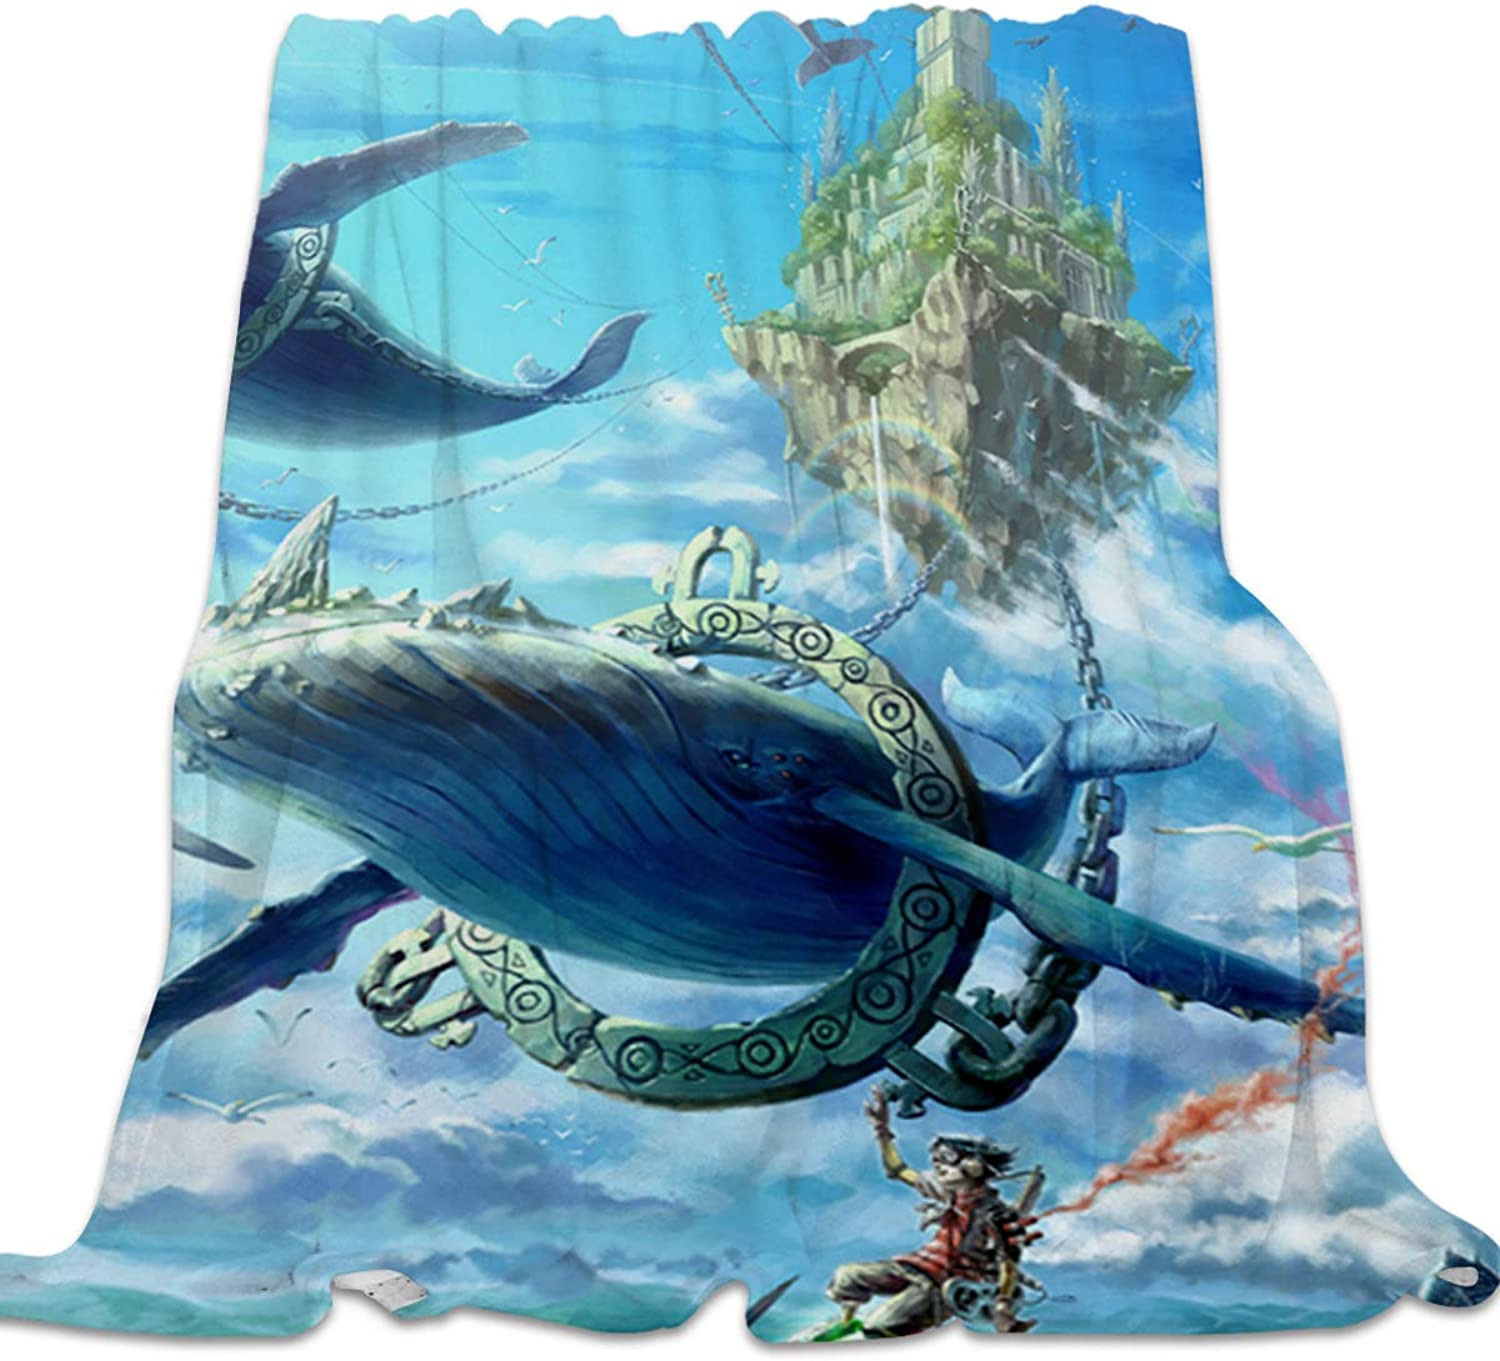 YEHO Art Gallery Flannel Fleece Bed Blanket Soft Throw-Blankets for Kids Adult,Beautiful Landscape of Fish of Deep Sea,Comfort Blankets for Sofa Couch Bedroom Living Room Decor,39x49inch